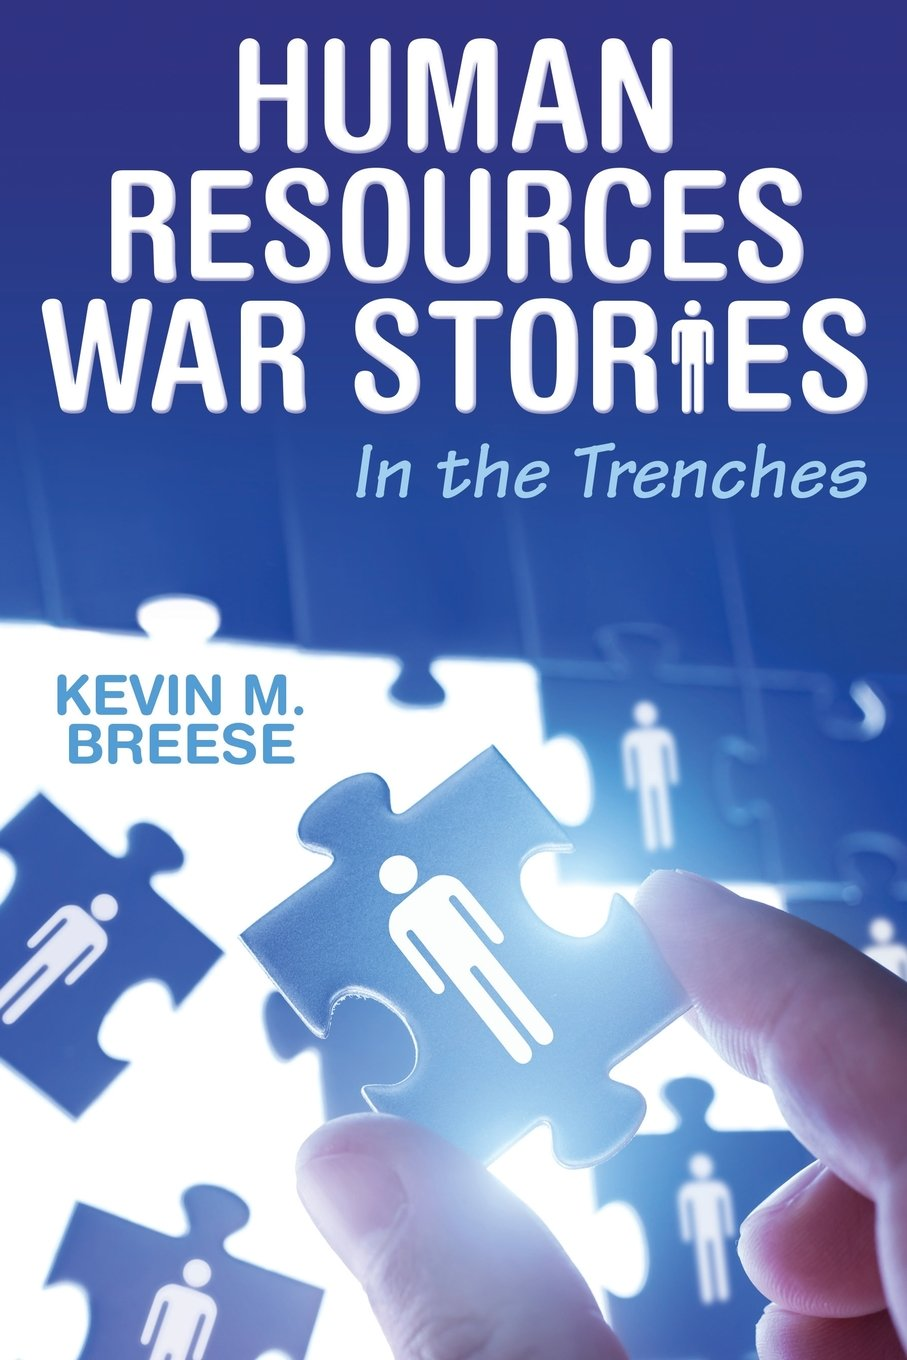 Human Resources War Stories: In the Trenches